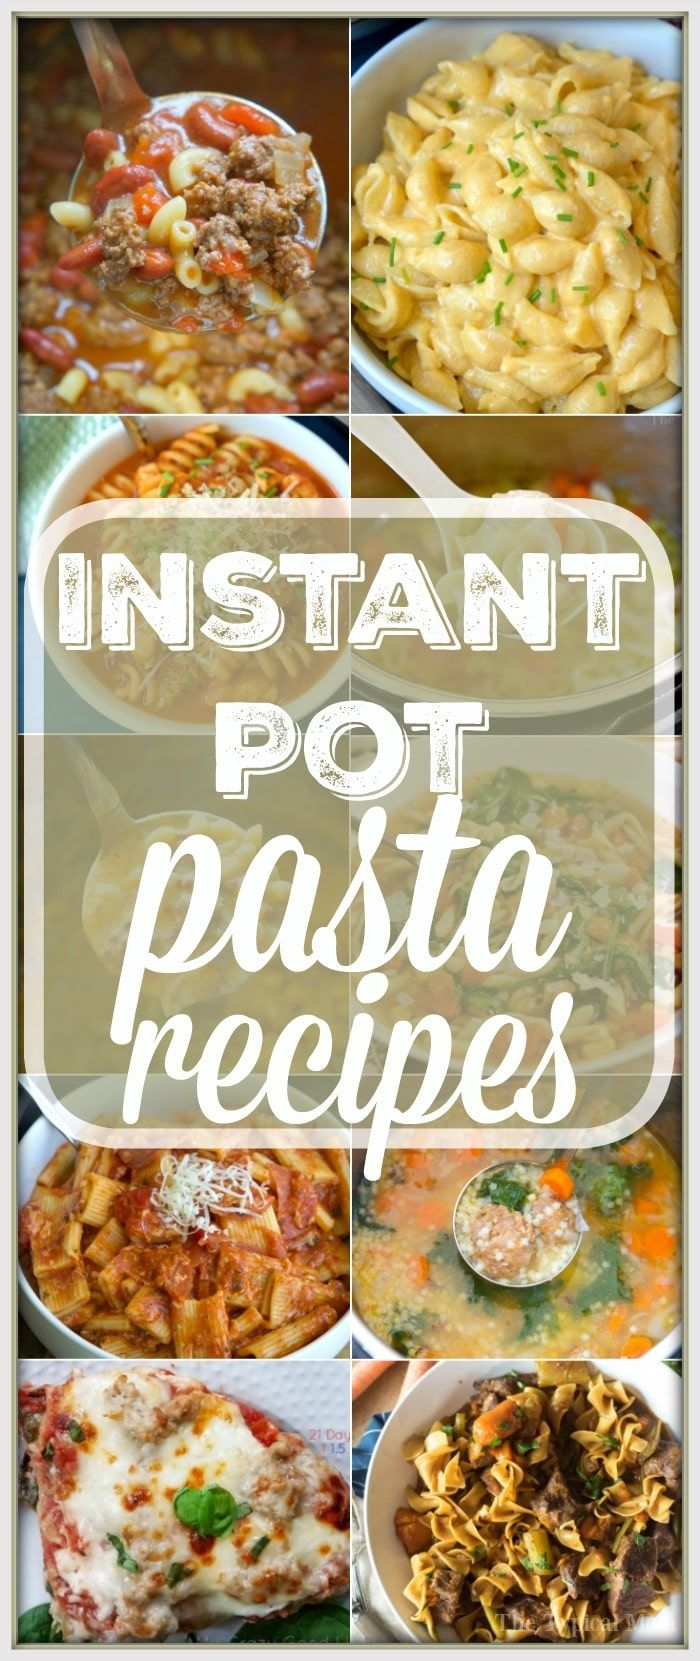 Here are 17 easy Instant Pot pasta recipes to get you started with your pressure cooker! Simple soups and main dishes with pasta in them that we love. #instantpot #pasta #recipes via @thetypicalmom